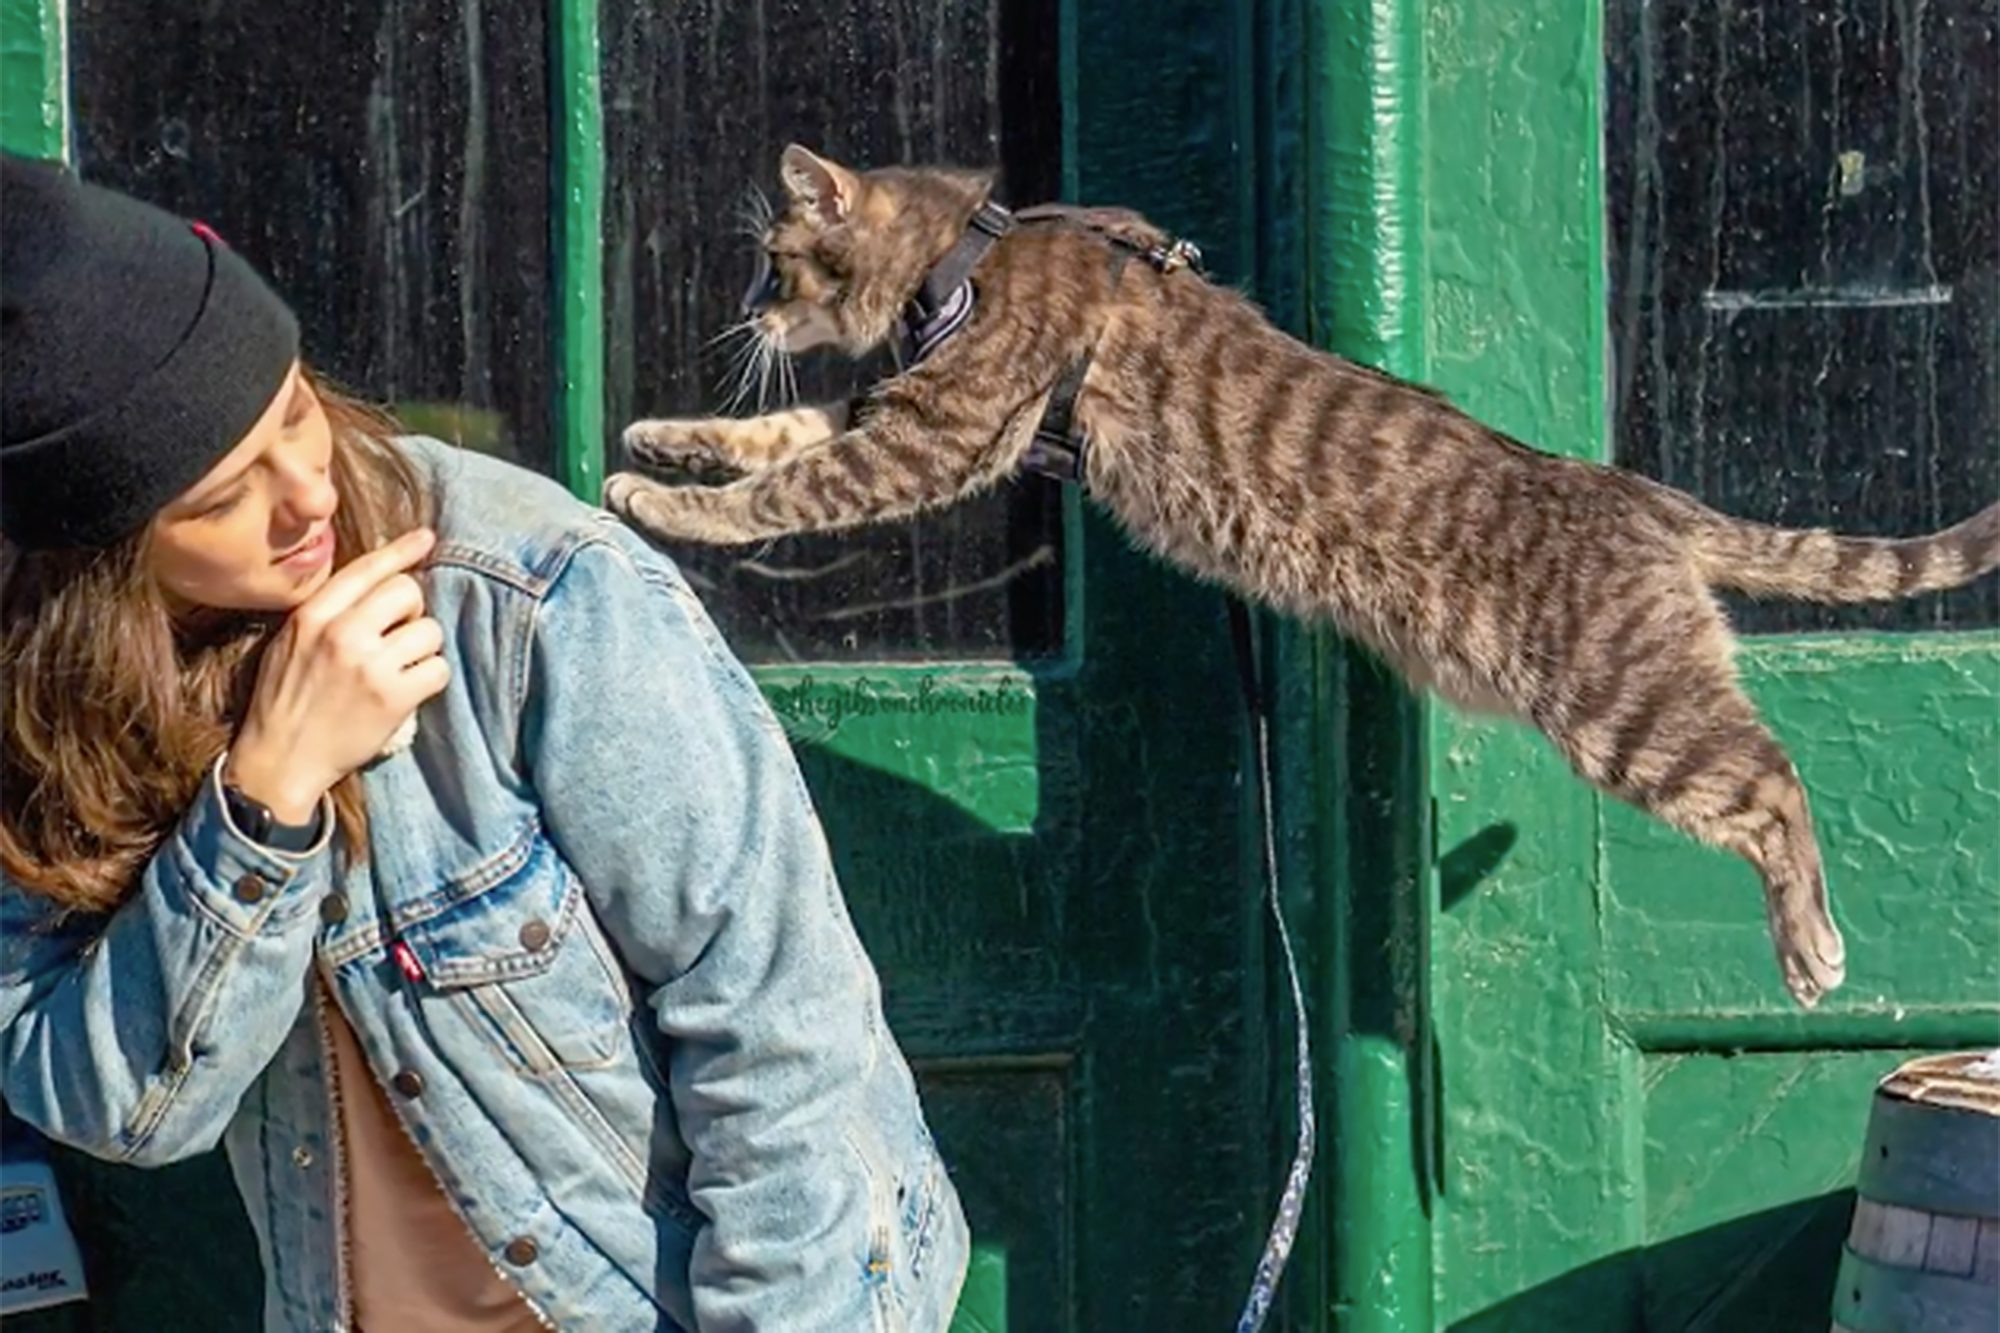 Gibson the cat jumping to his owner Sarah Klassen outside in front of a green door